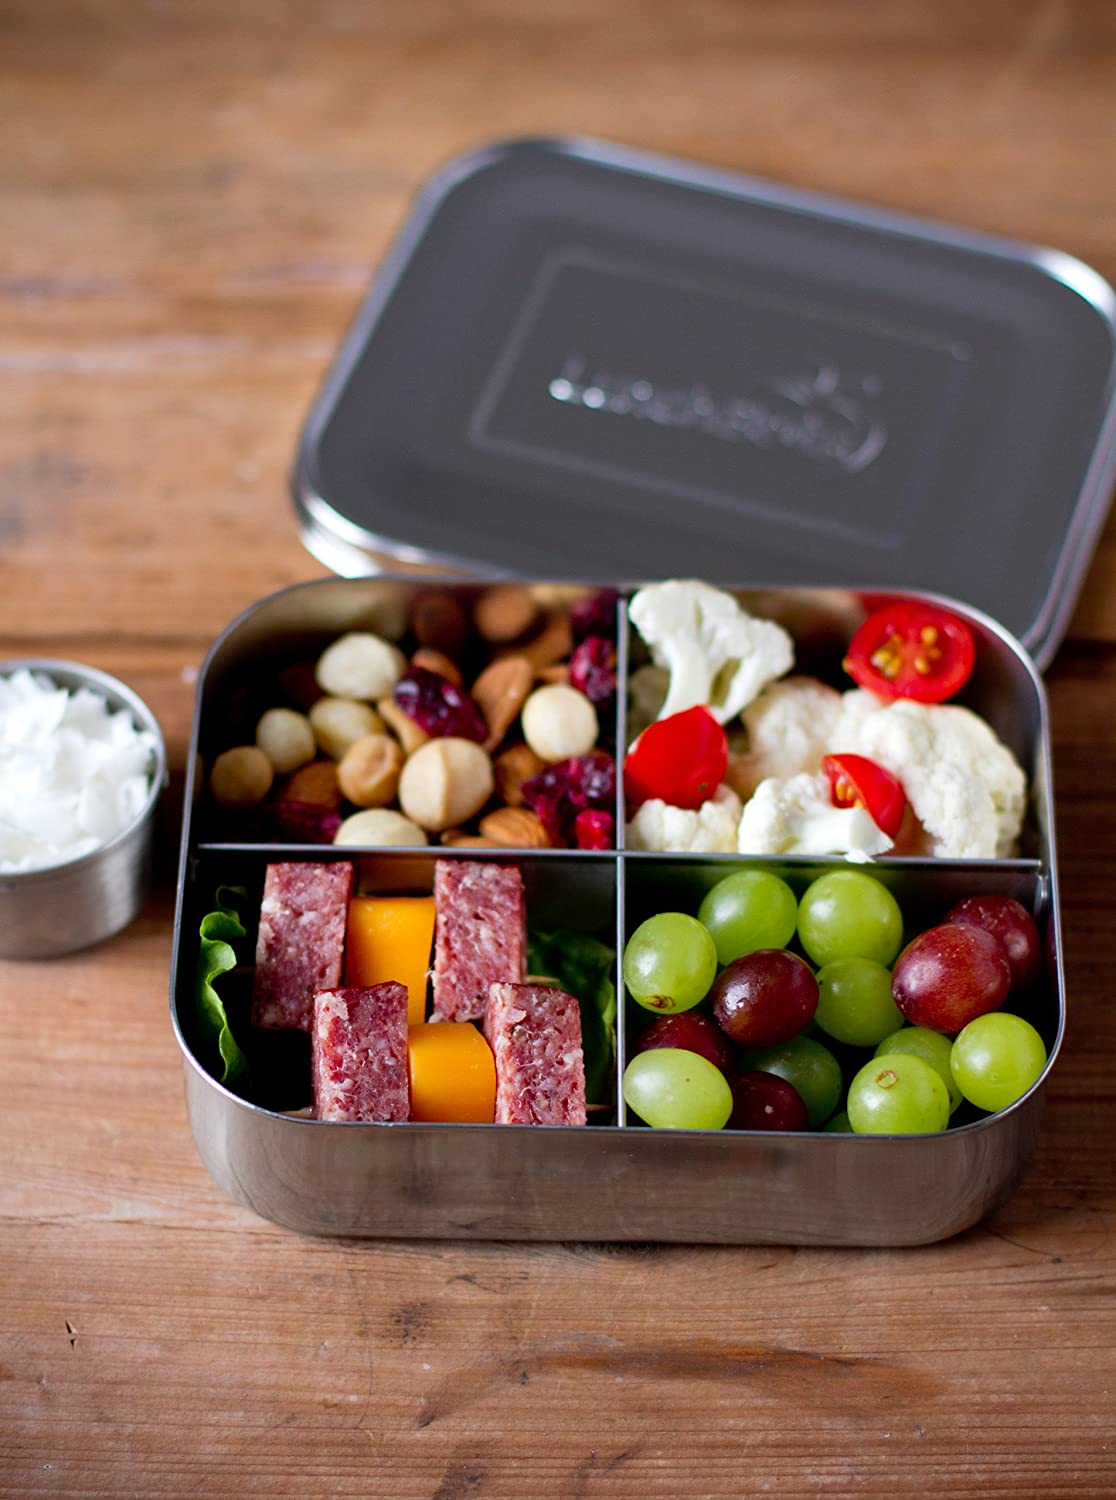 Bento Lunch Box Food Container School Picnic 4 Leakproof ...  |Bento Box Lunch Containers